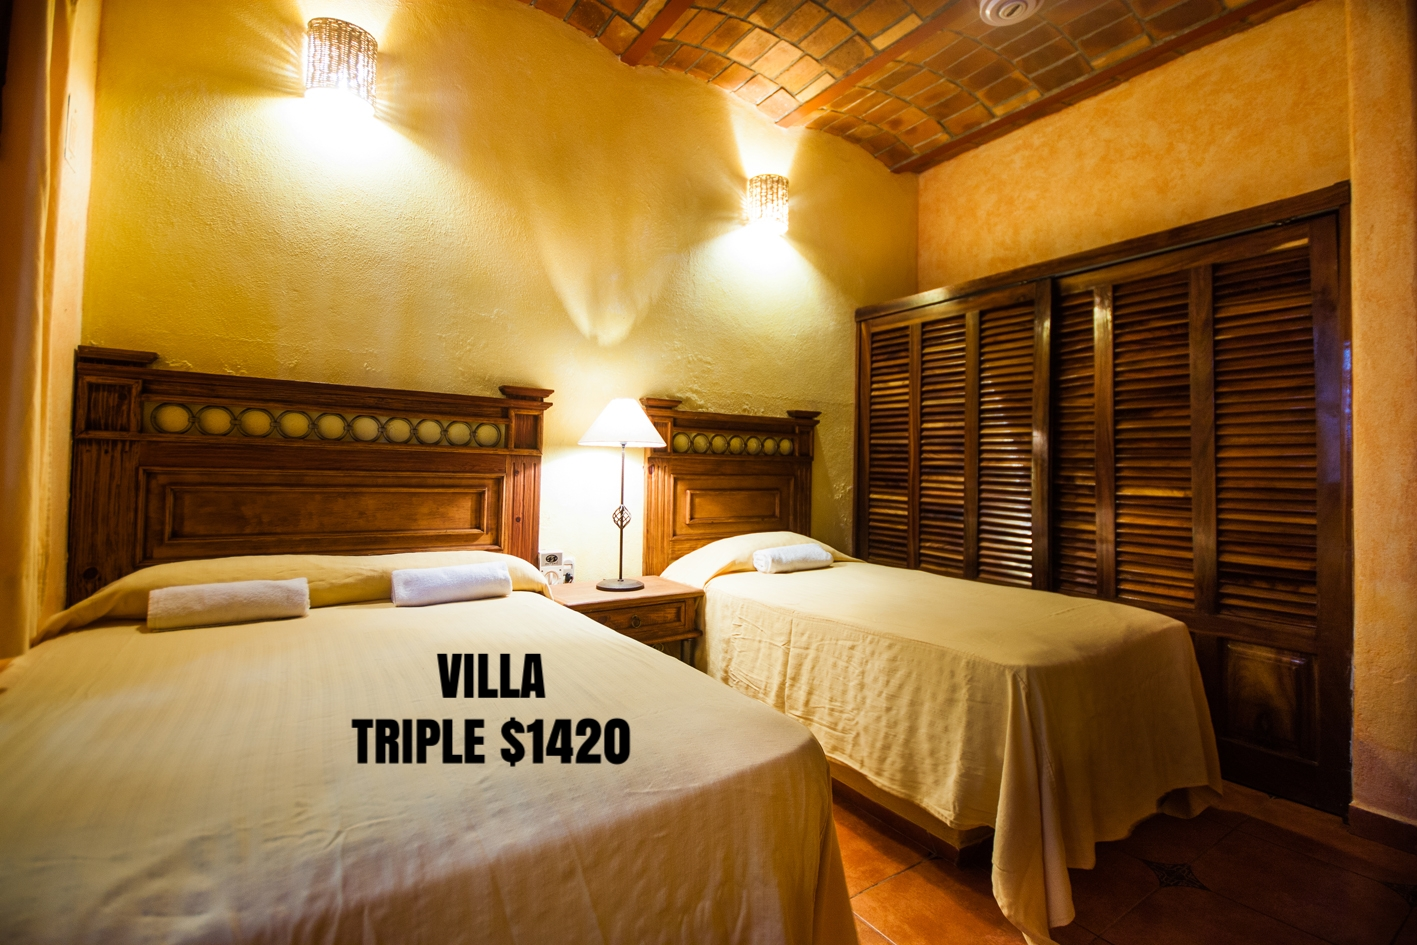 VILLA bedroom1- Rooms 110, 214.jpg